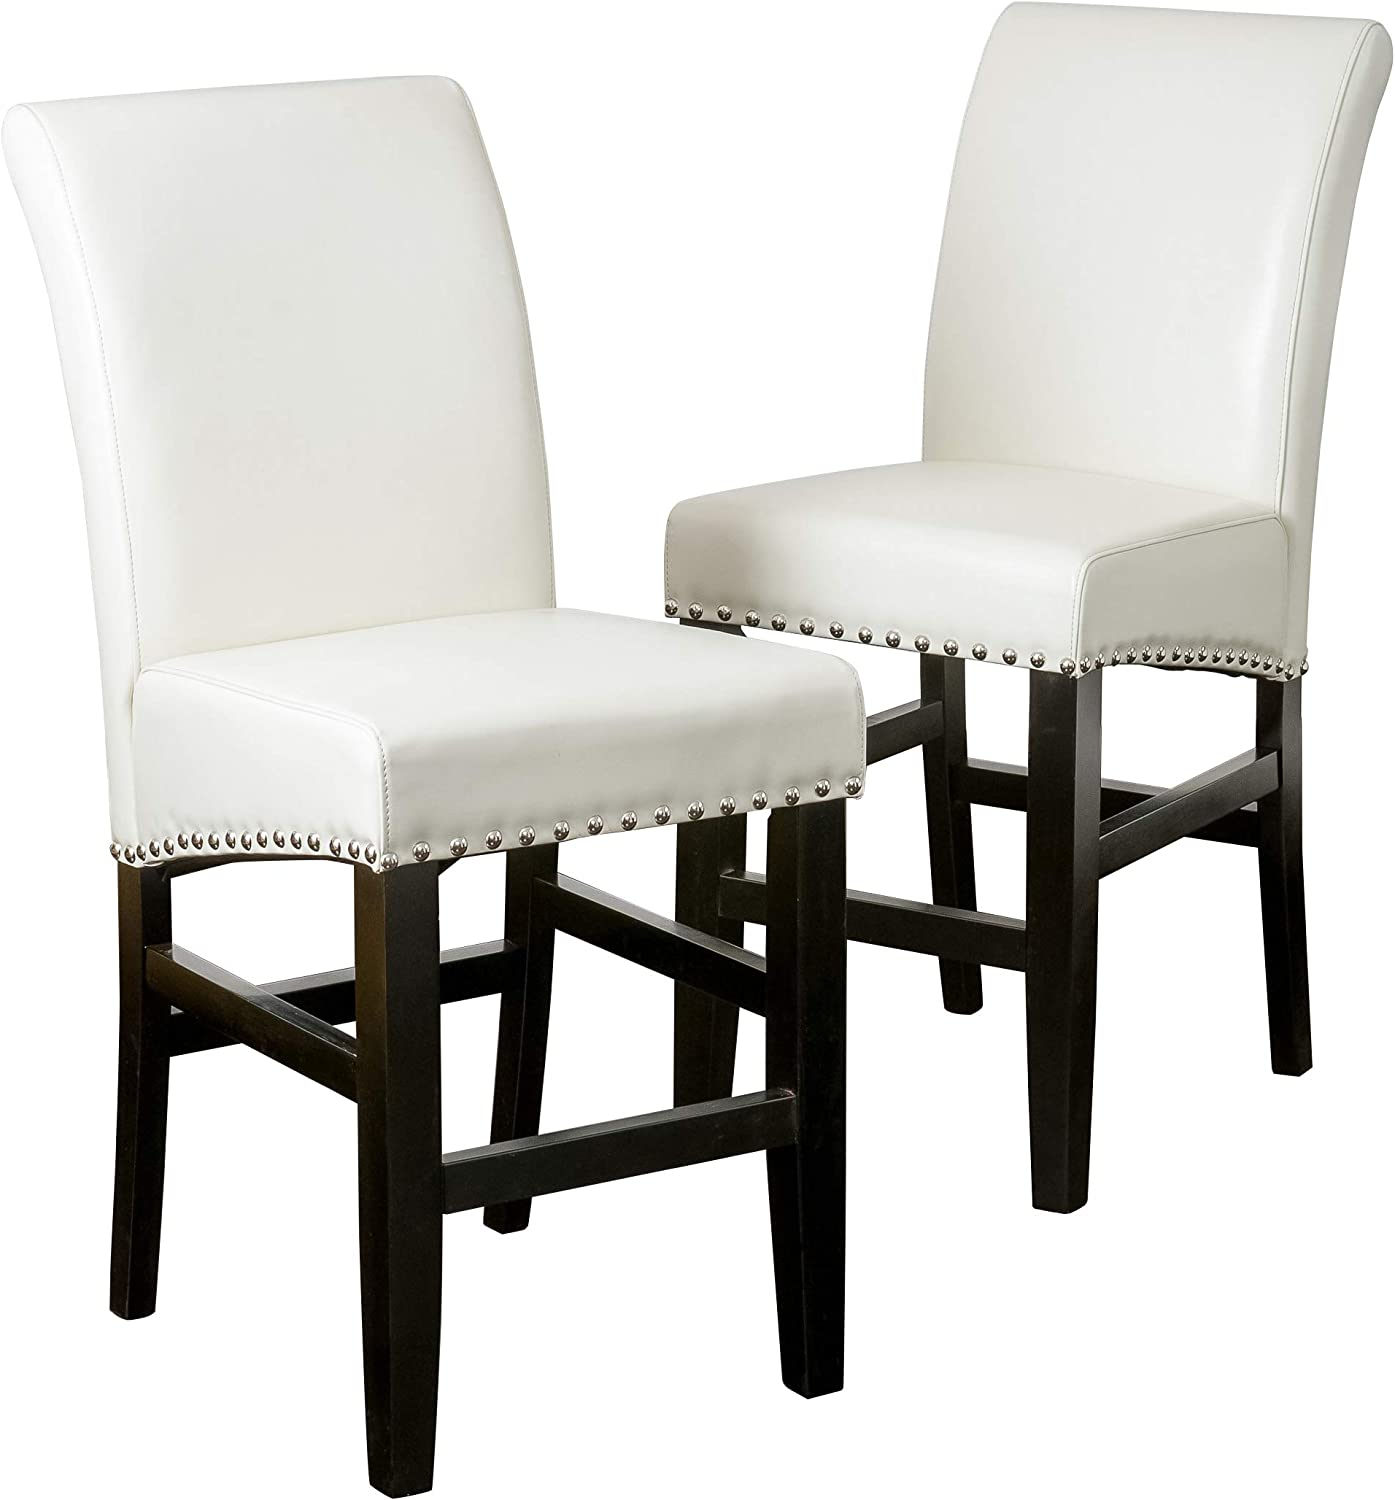 Christopher Knight Home 238543 Lisette Leather Counter Stool (Set of 2), Ivory